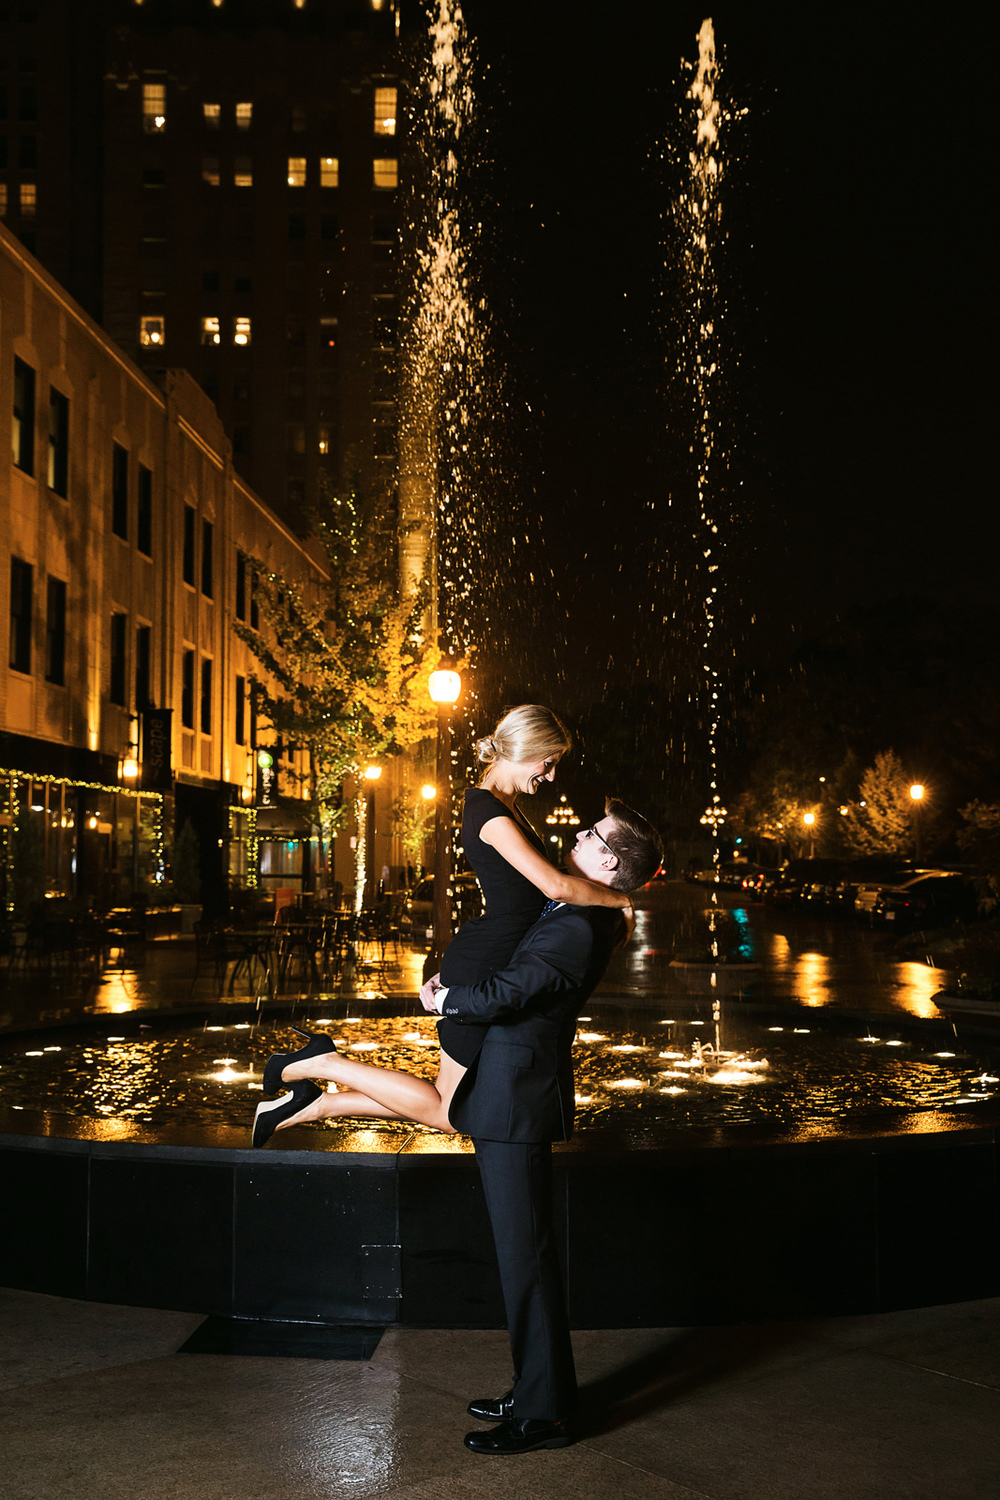 Oldani-Photography-St-Louis-CWE-Central-West-End-Night-Engagement-Photos_20141012_190725.jpg